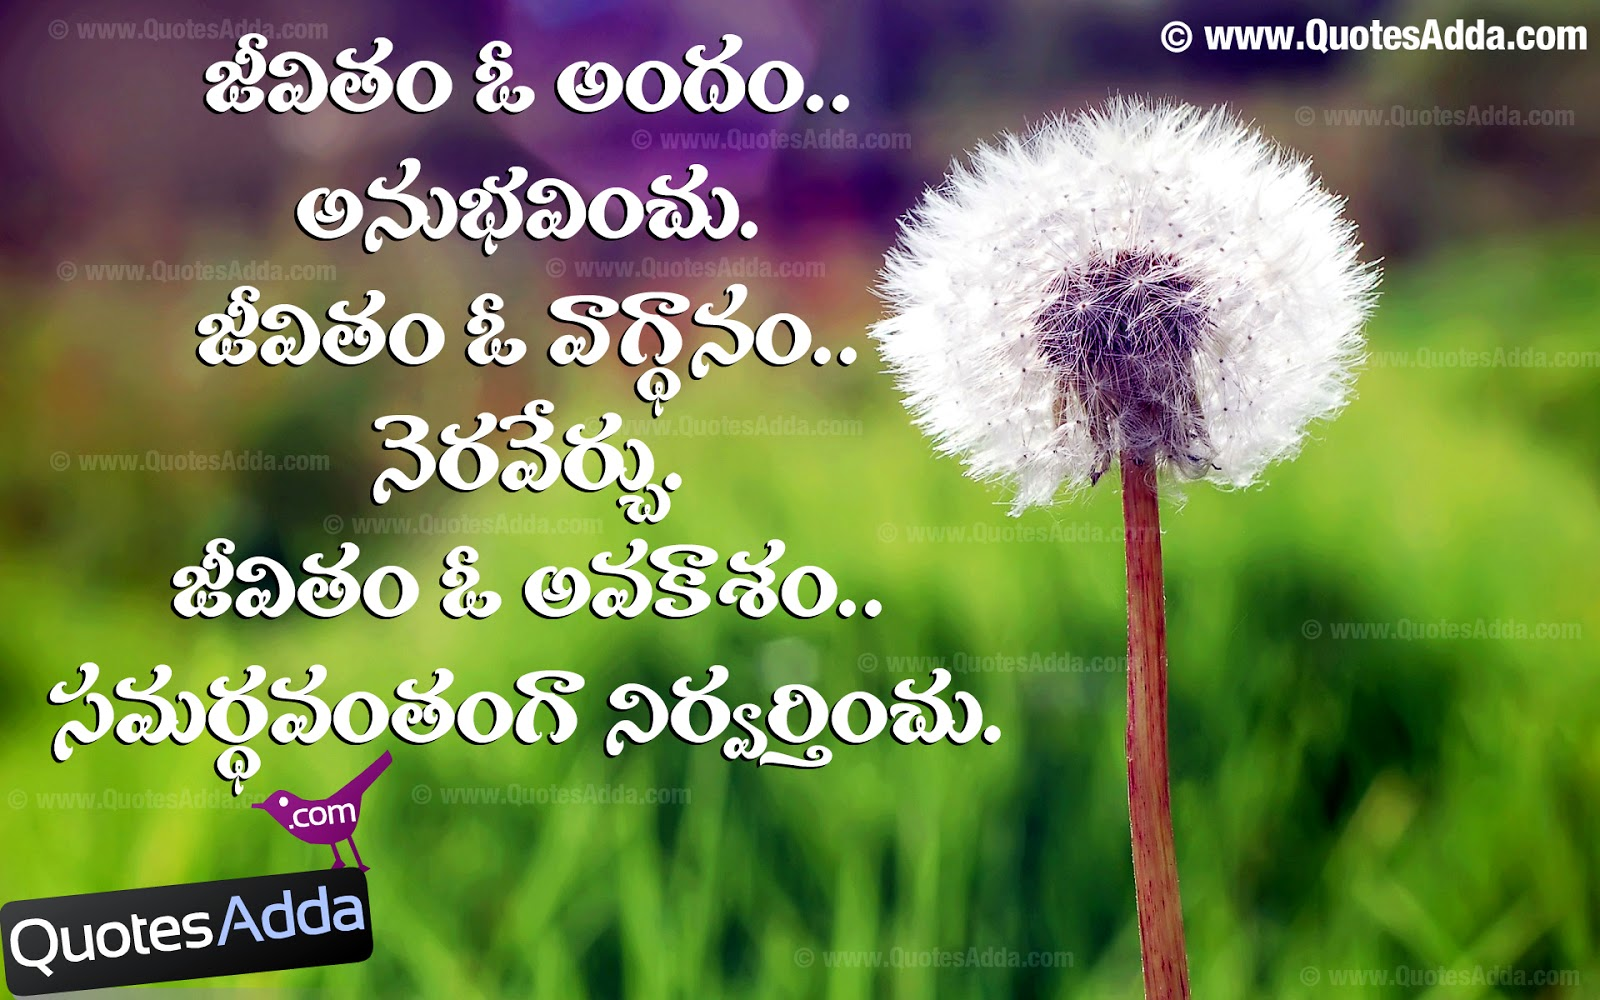 search results for kannada quotes calendar 2015